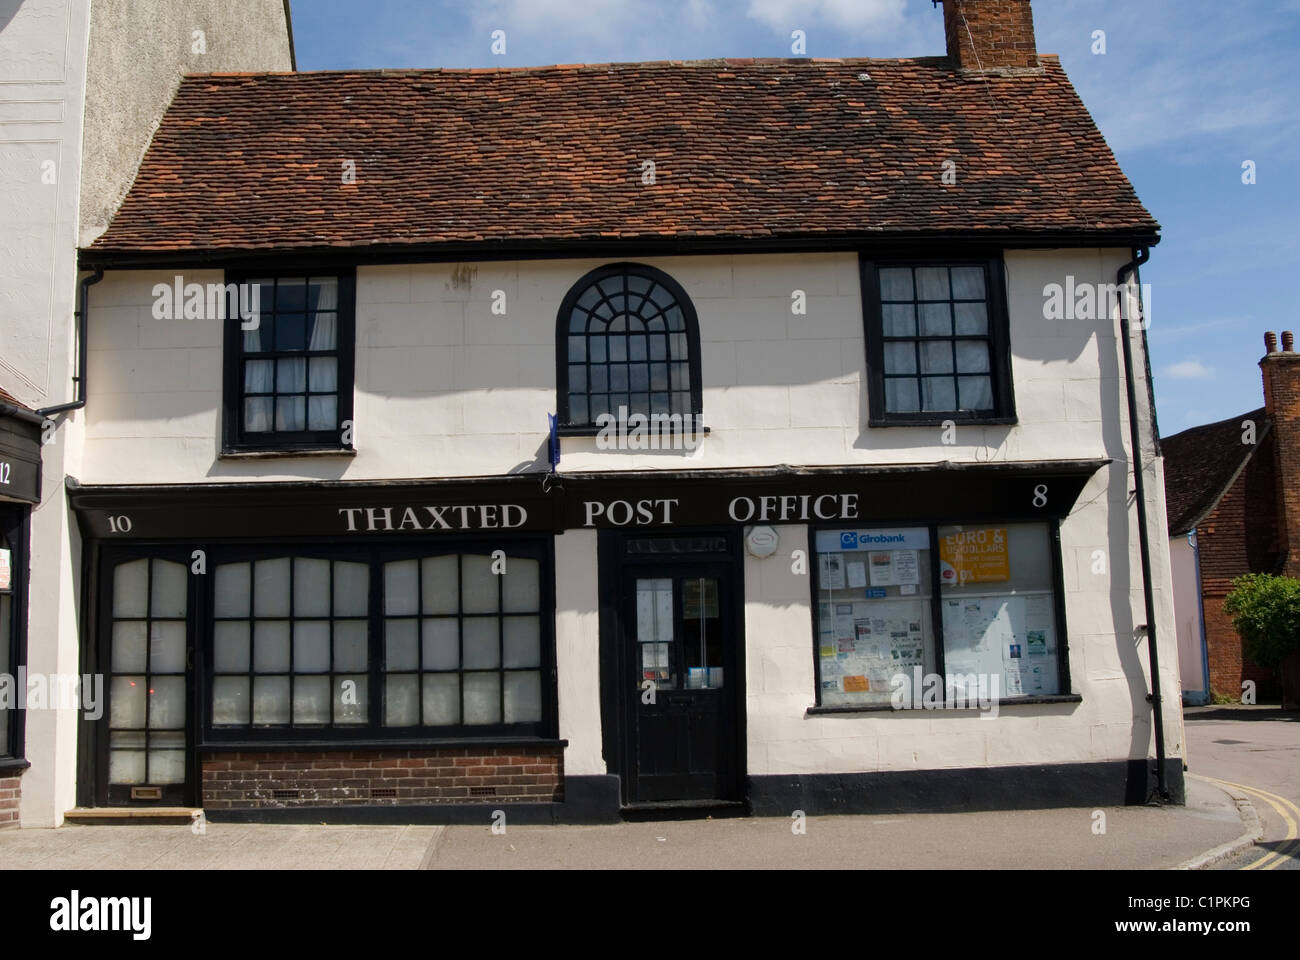 England, Essex, Thaxted Post office, facade - Stock Image